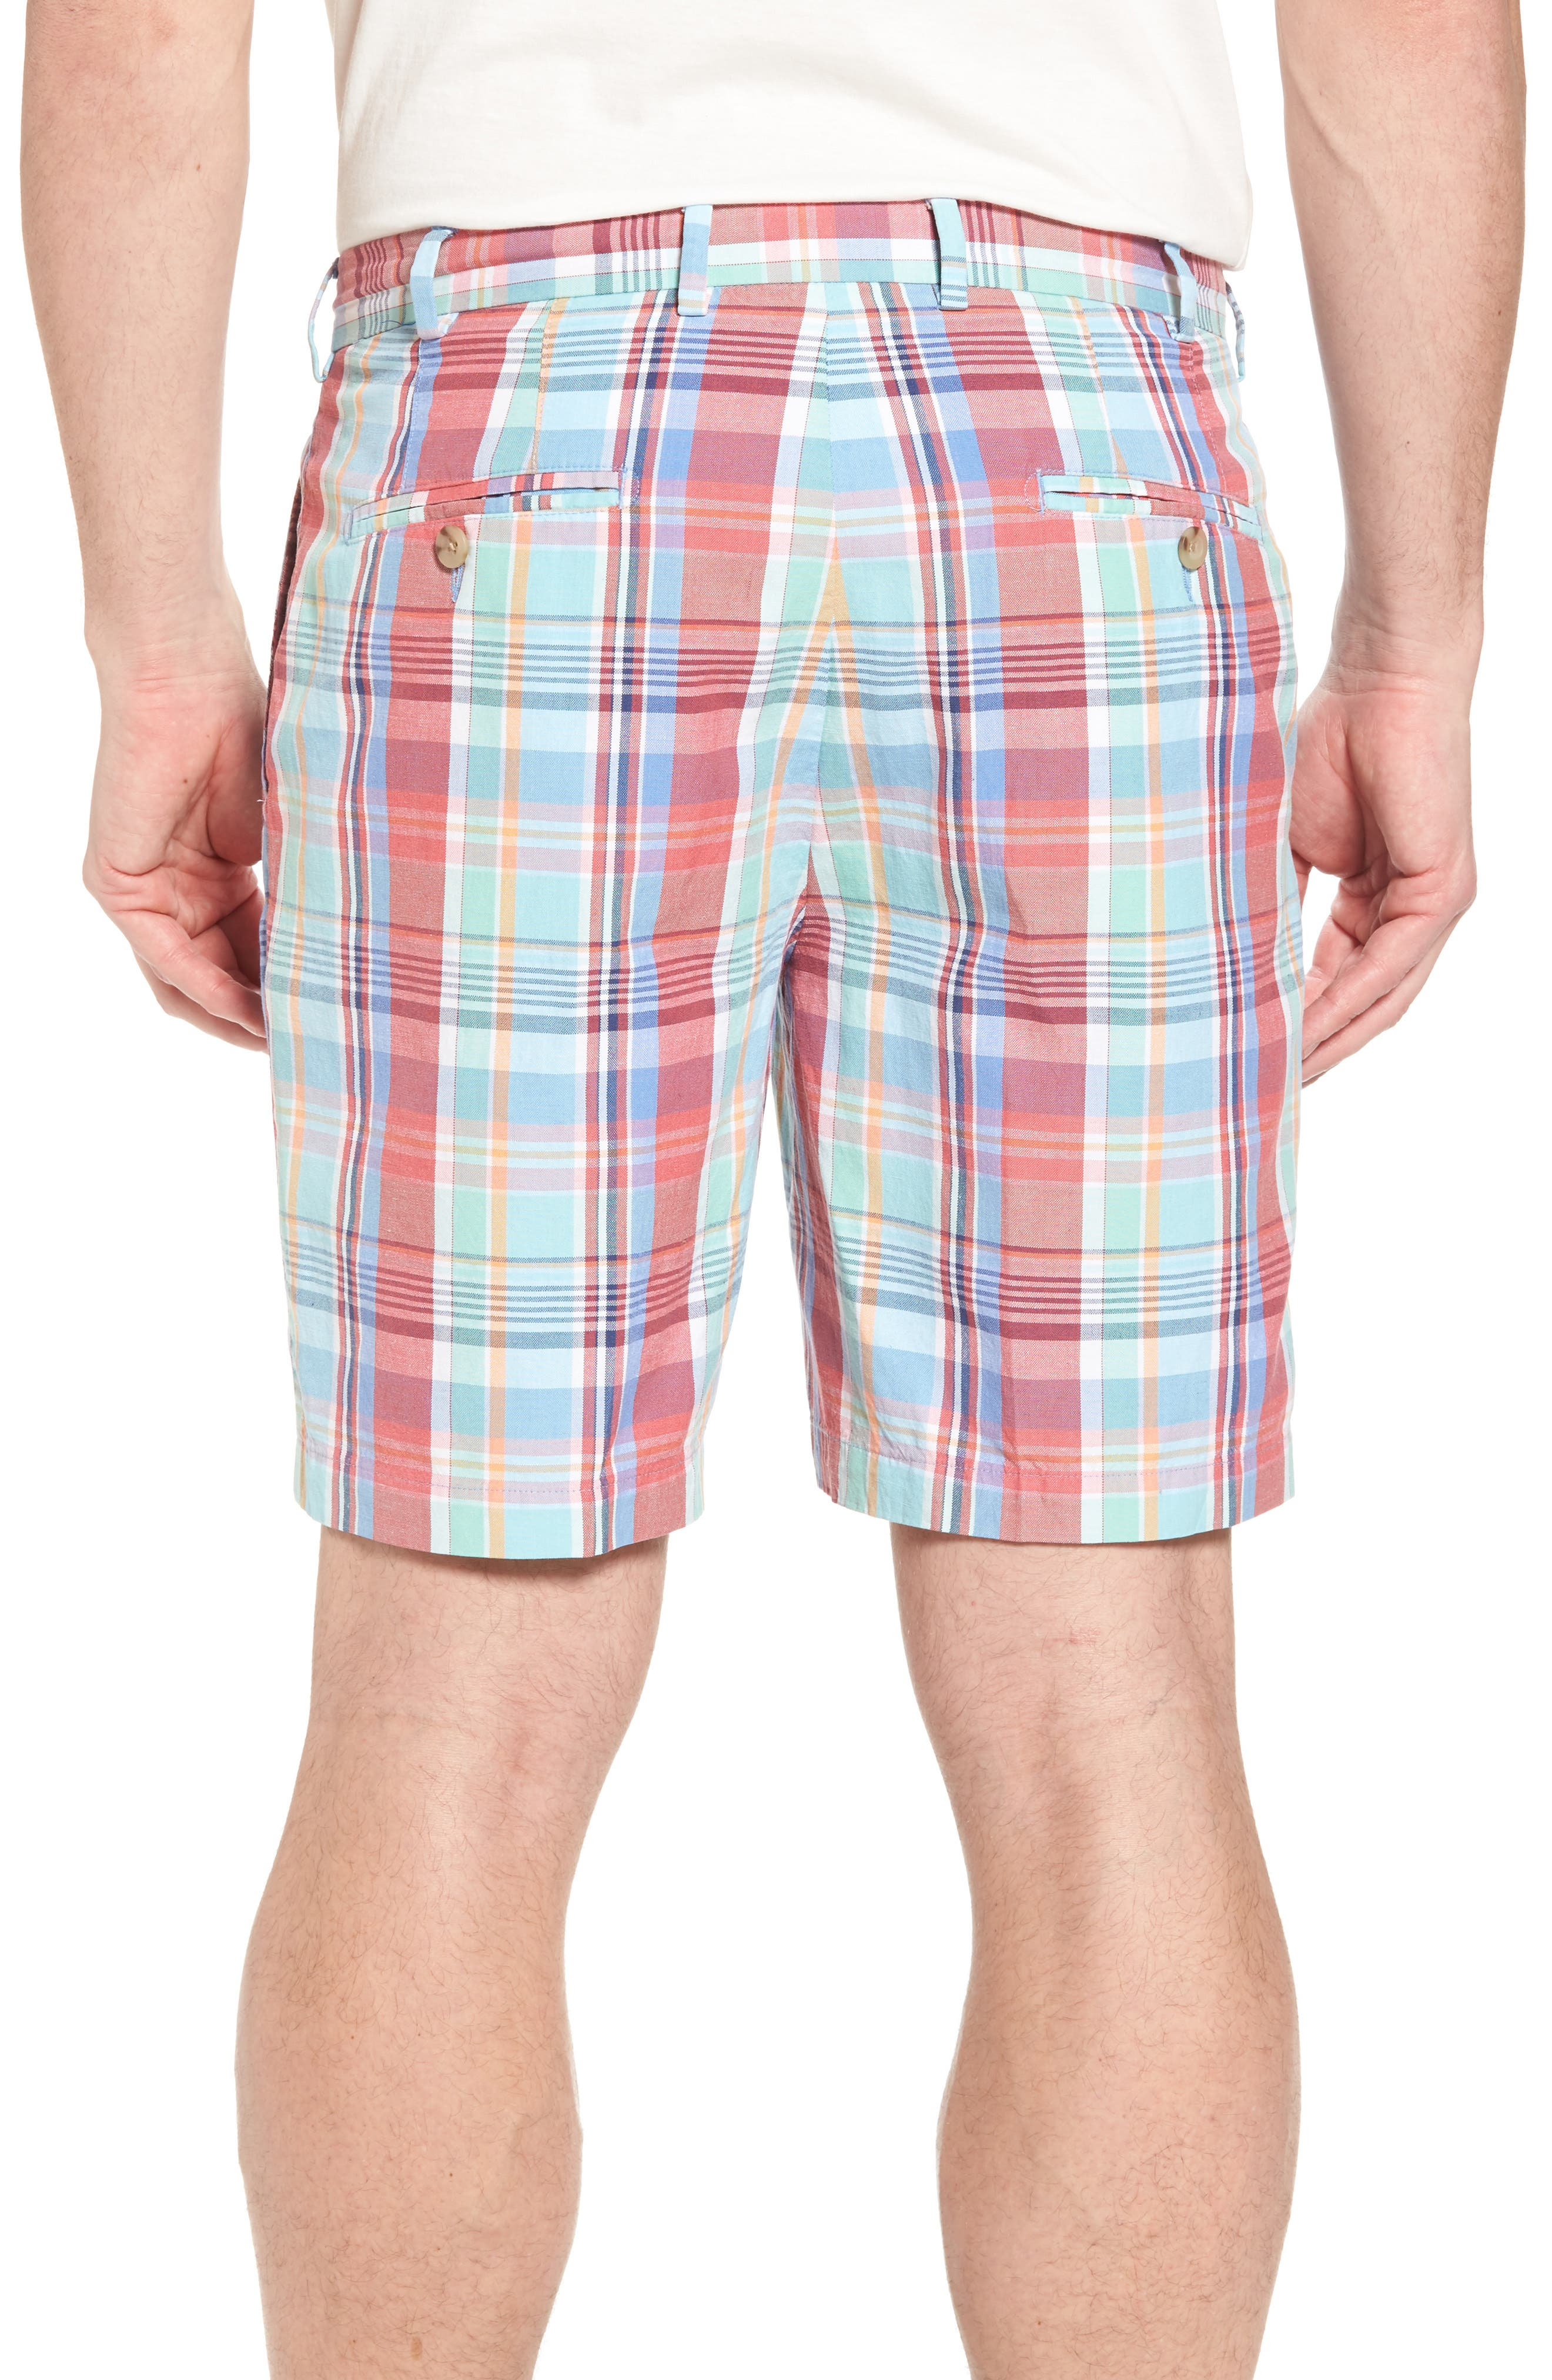 Seaside Madras Plaid Shorts,                             Alternate thumbnail 2, color,                             Cape Red